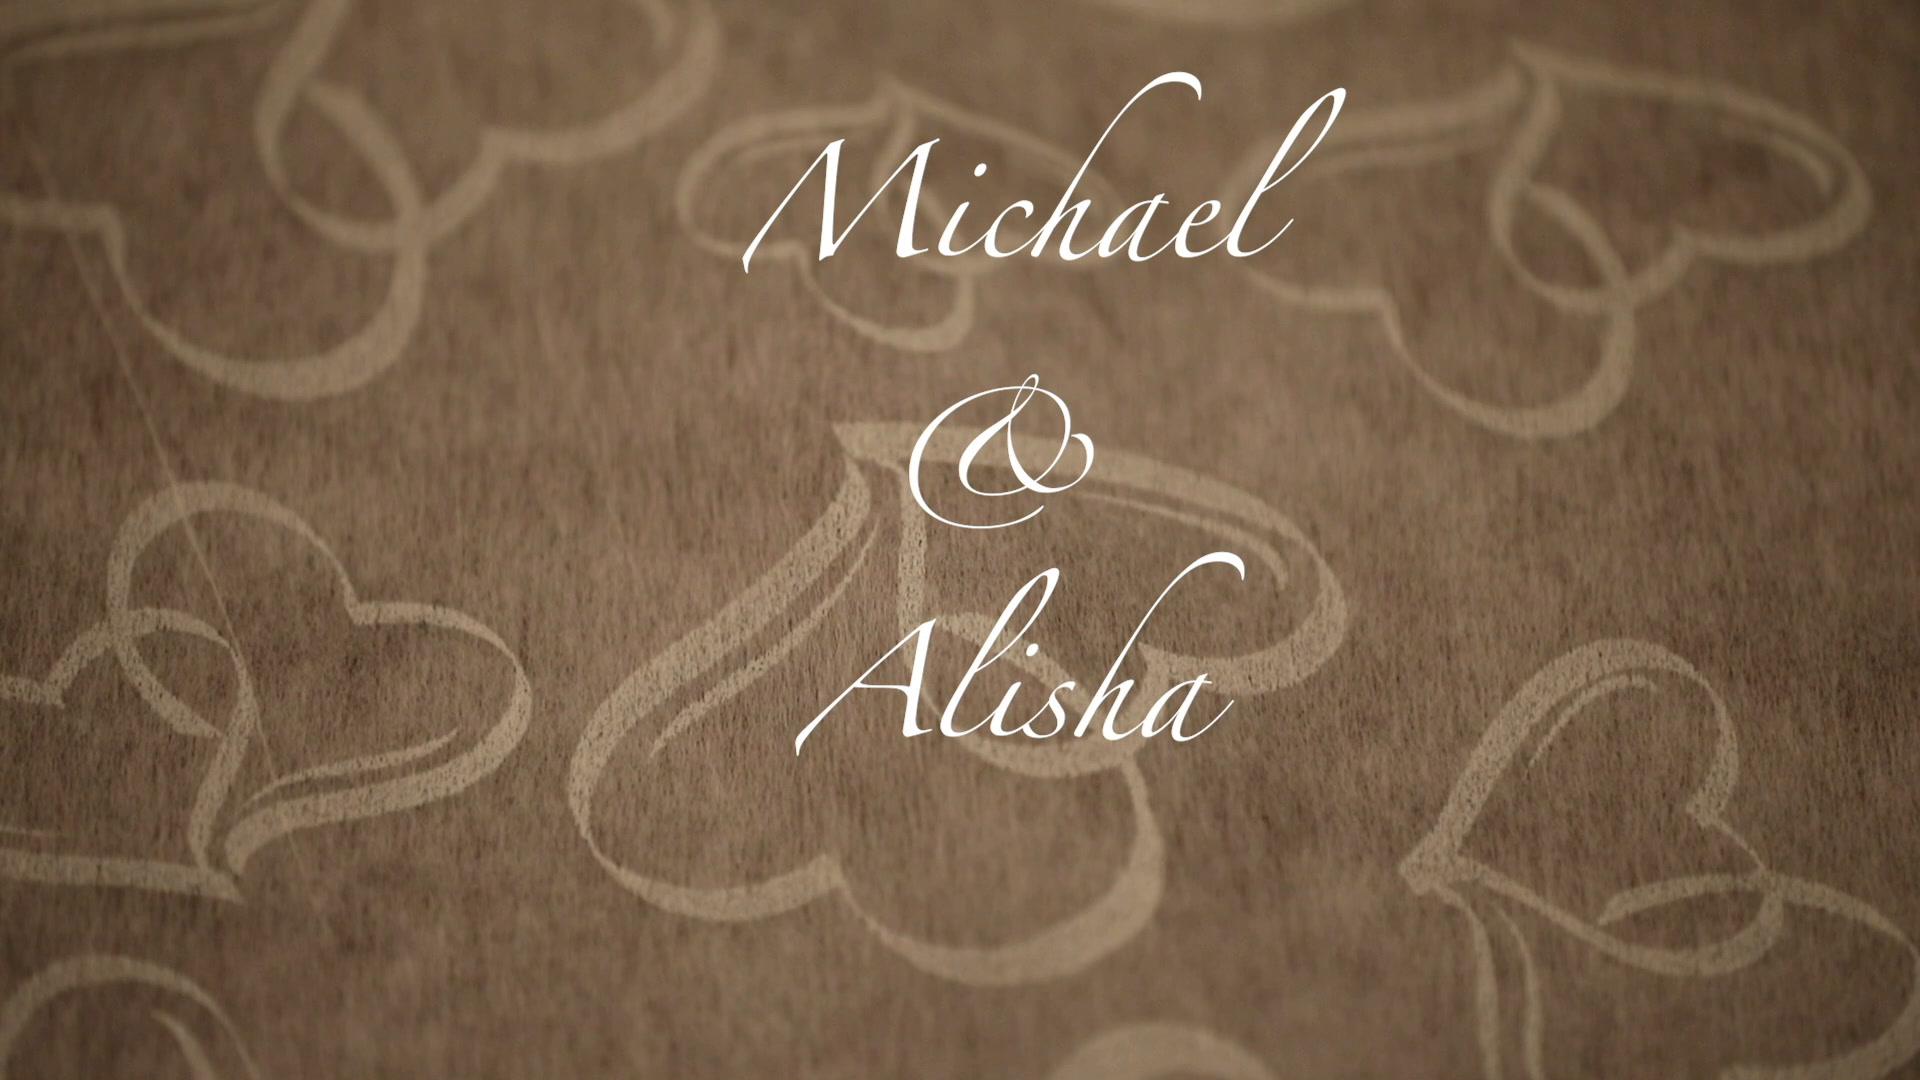 Michael + Alisha | Sacramento, California | First Babtist Church of Fair Oaks